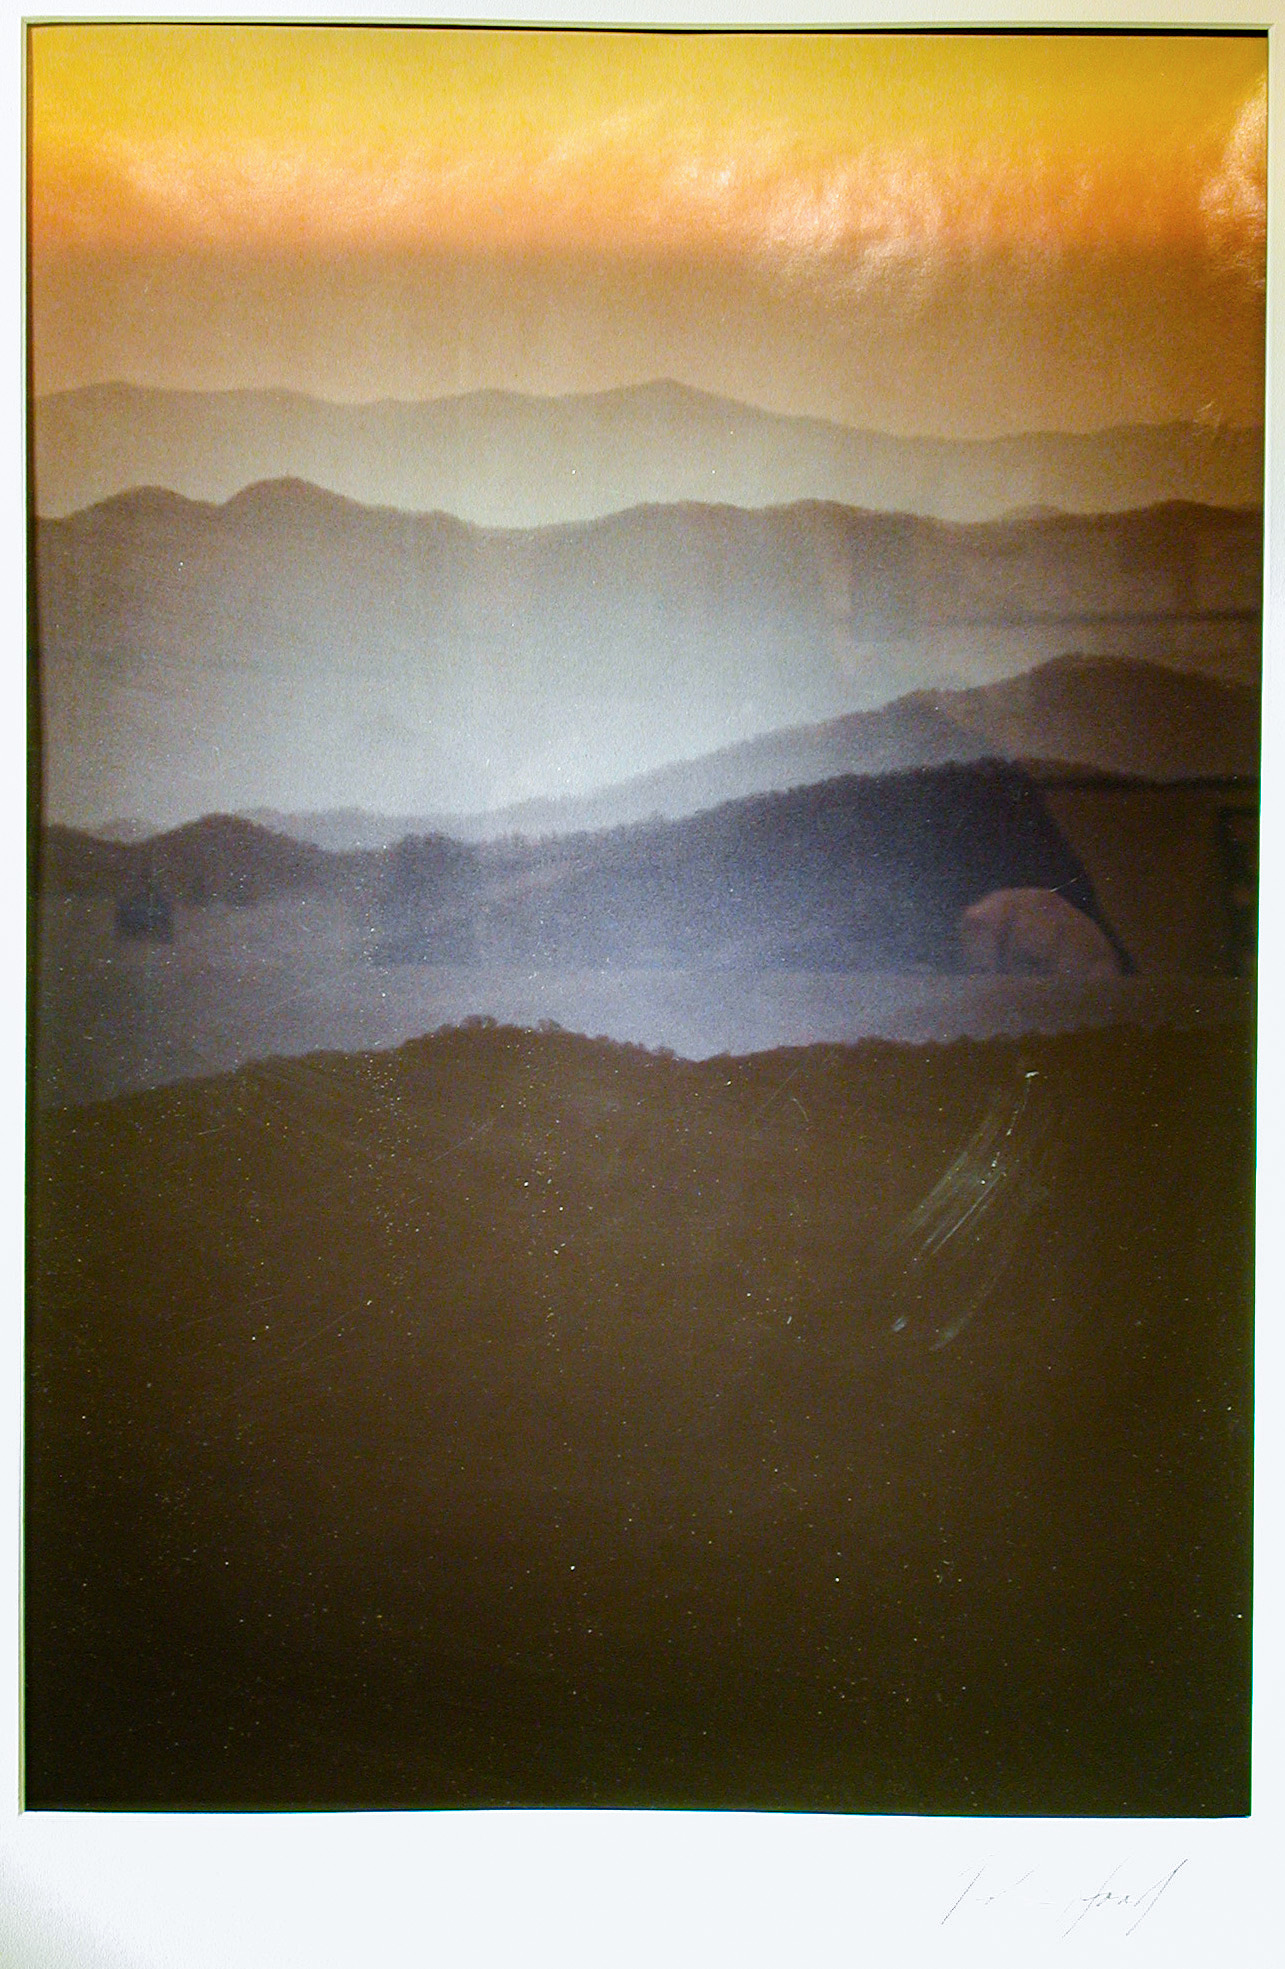 """""""Dusk, Great Smoky Mountains"""" photographic print by Robin Hood, 1994 (88.33)"""